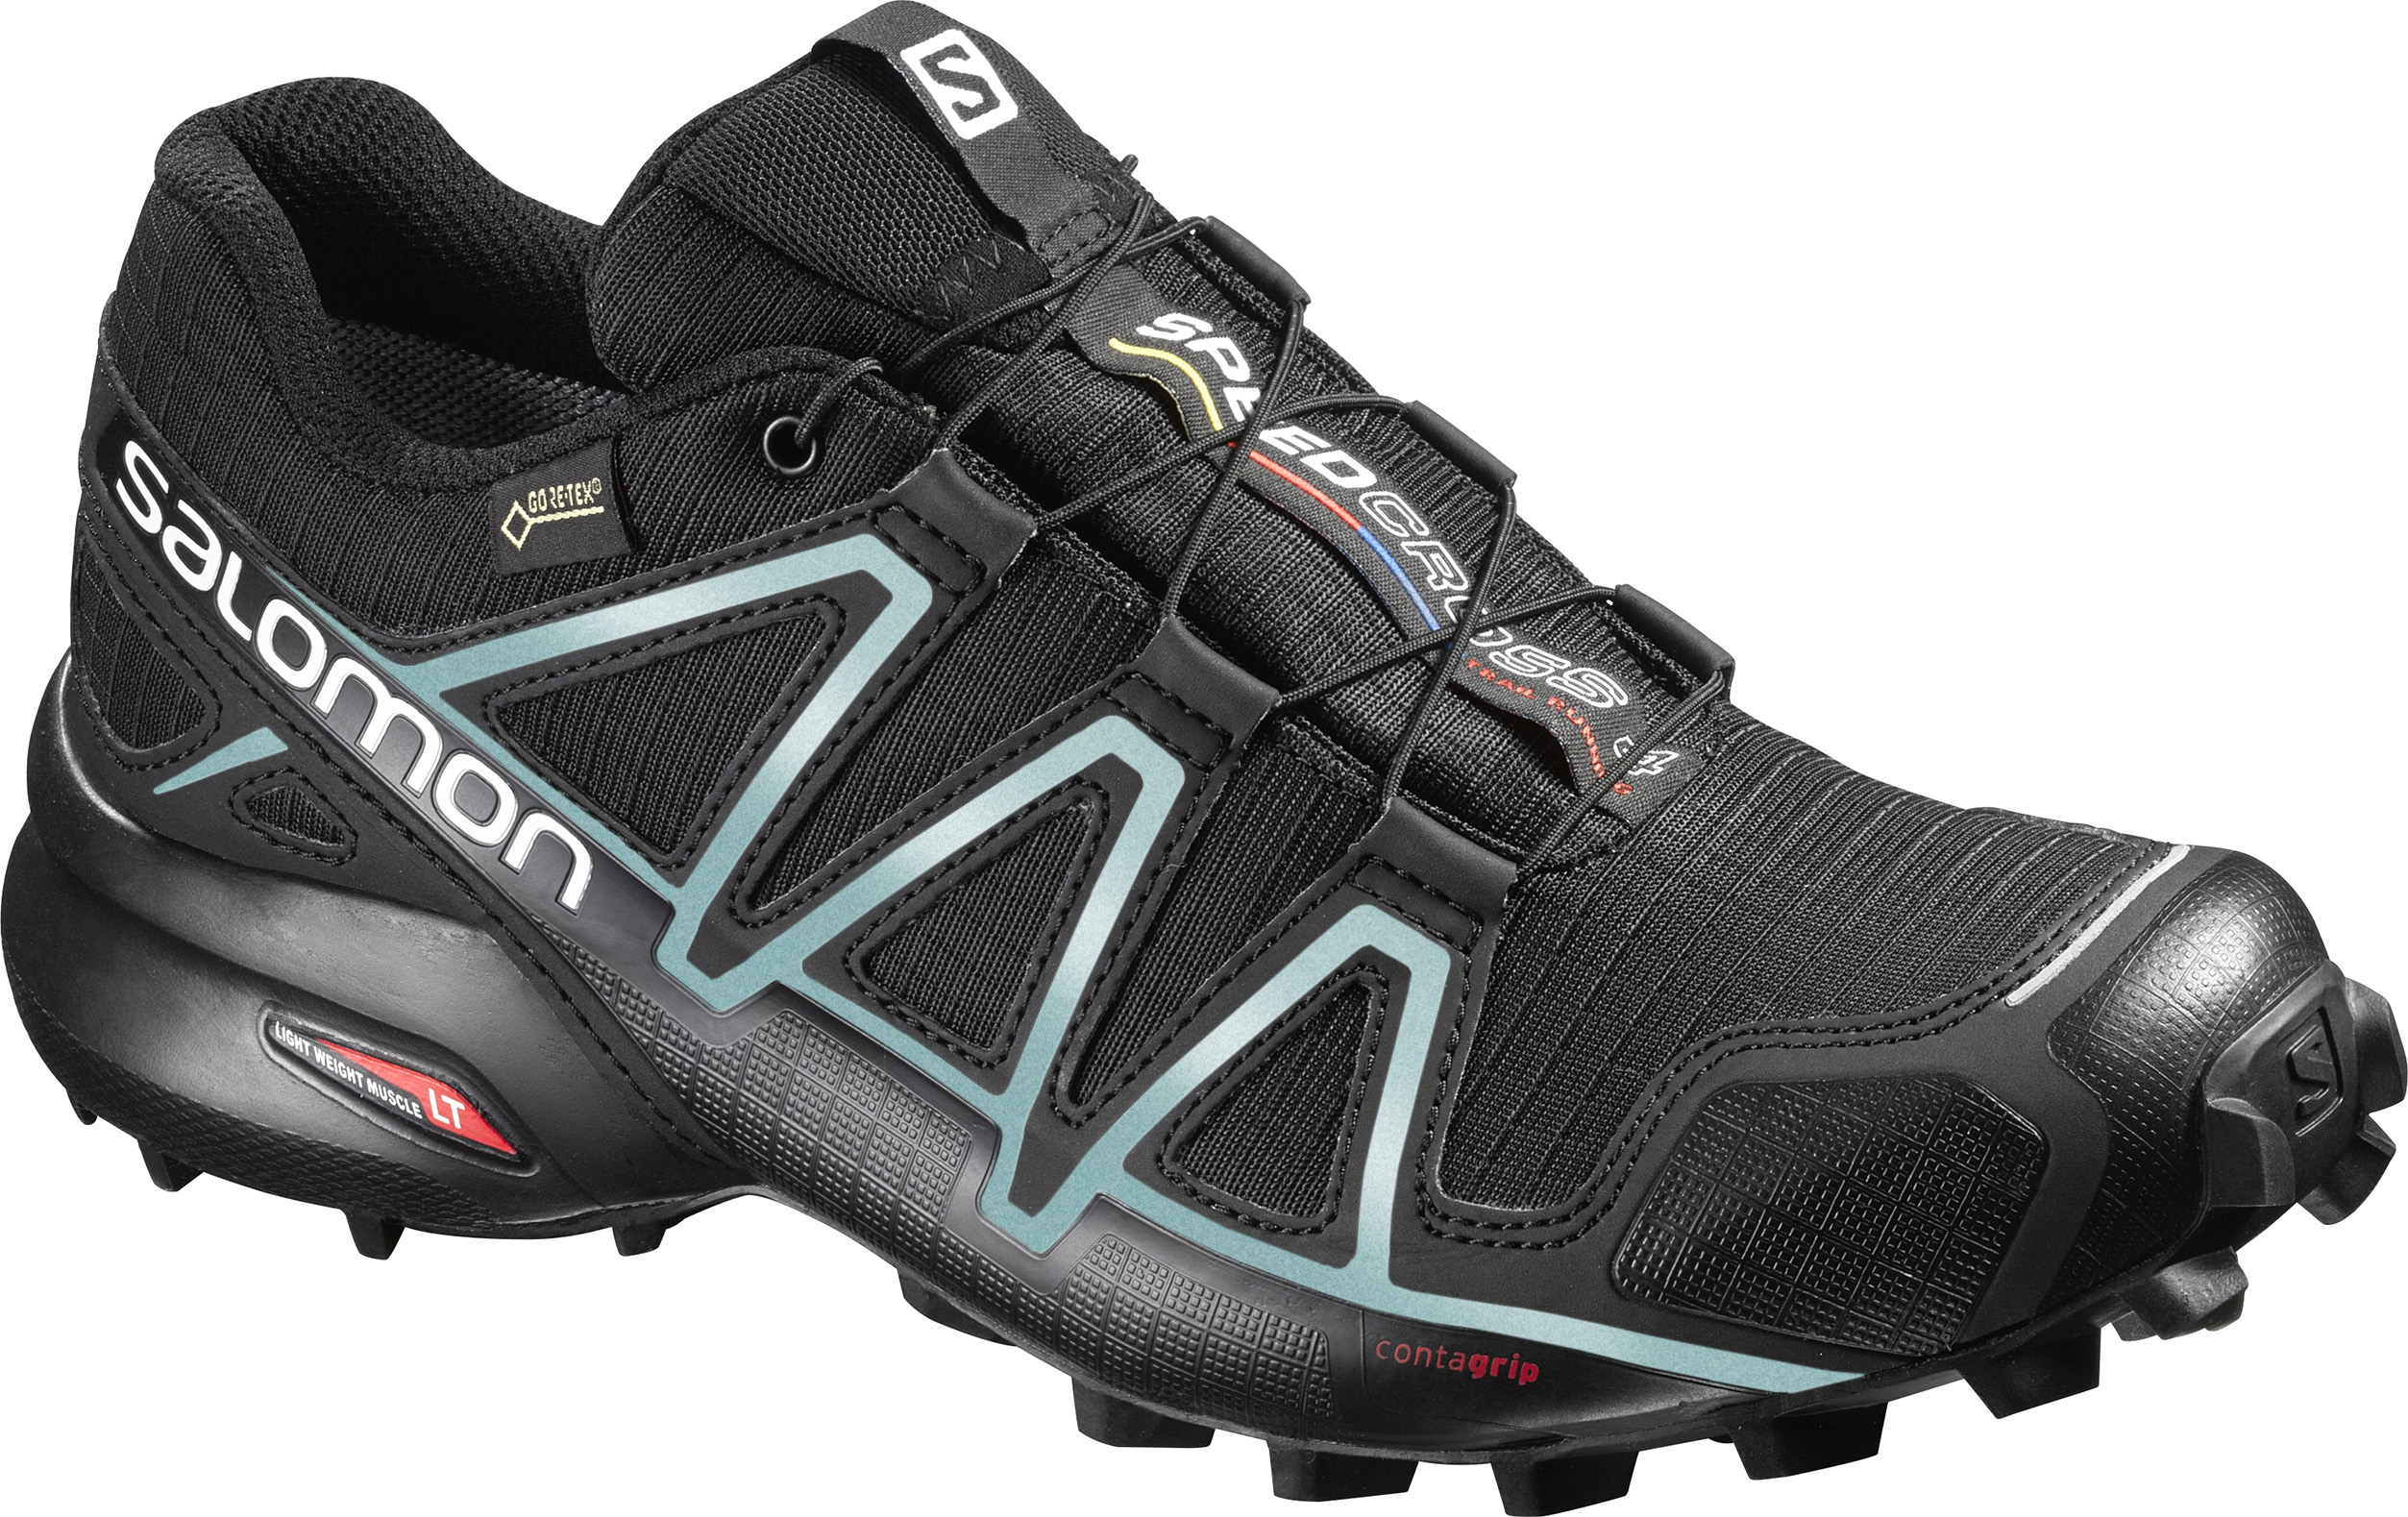 Chaussures de trail | Salomon | Women's Speedcross 4 GTX